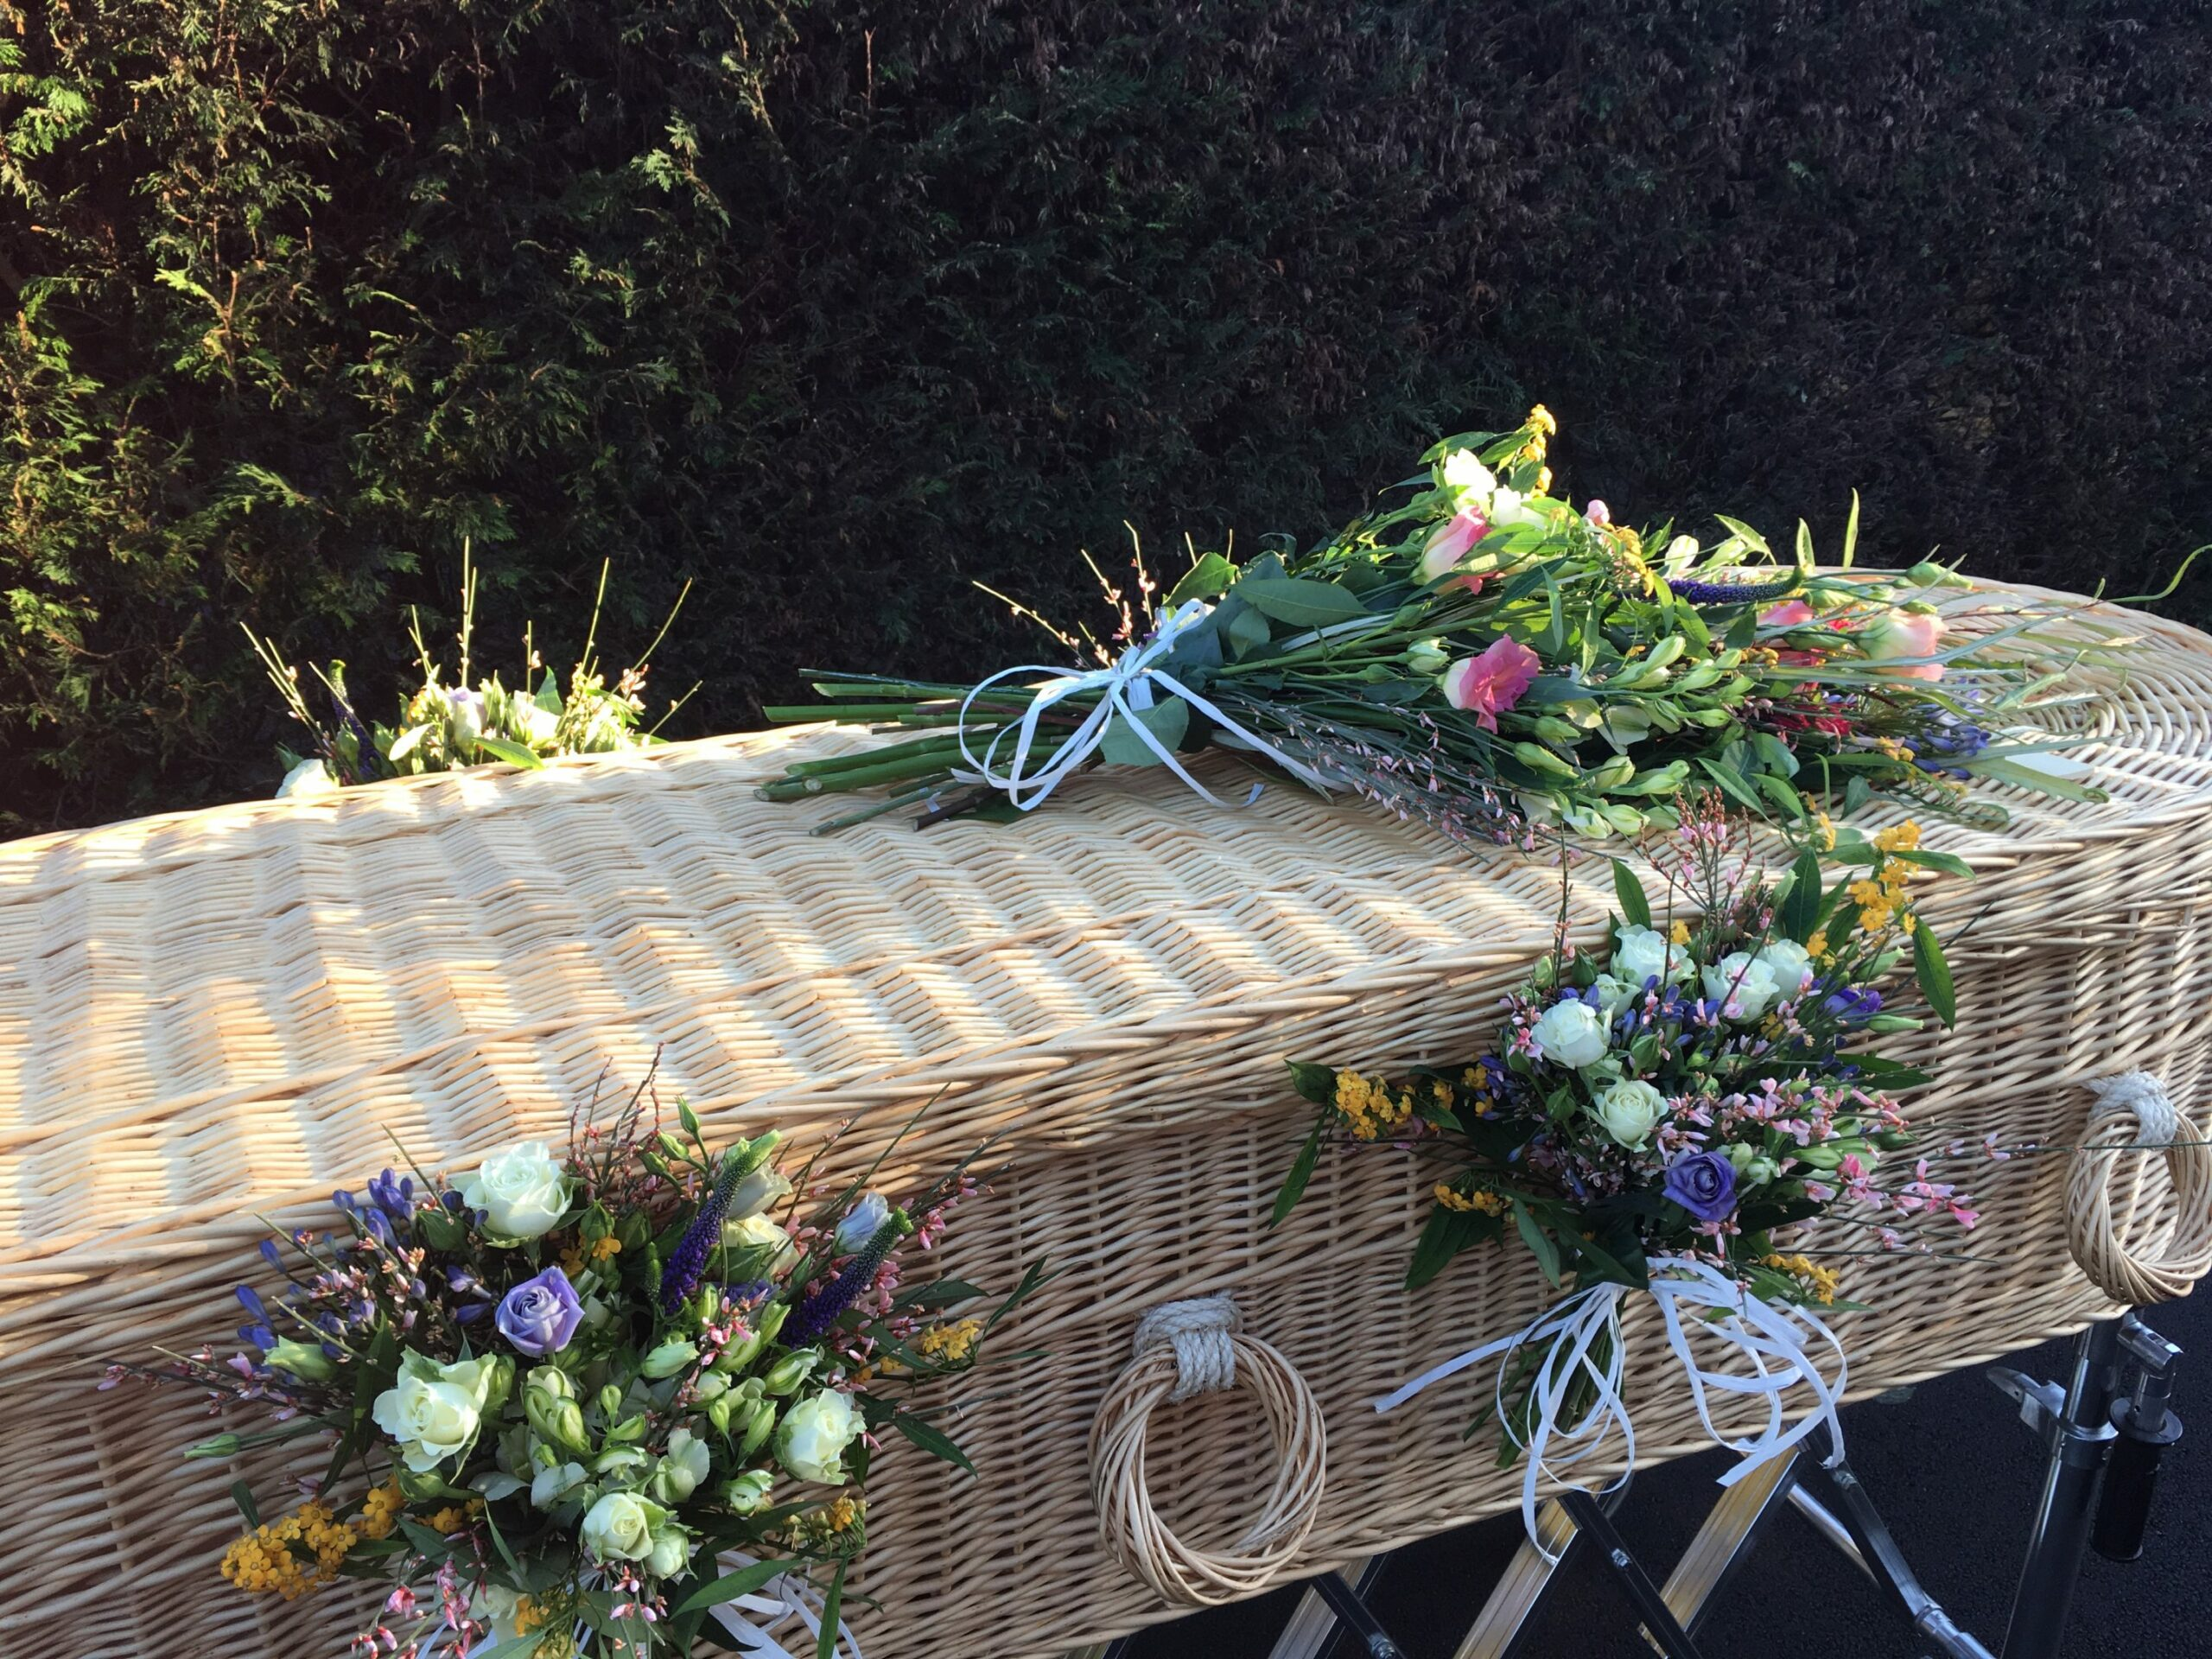 Wicker coffin with flowers on